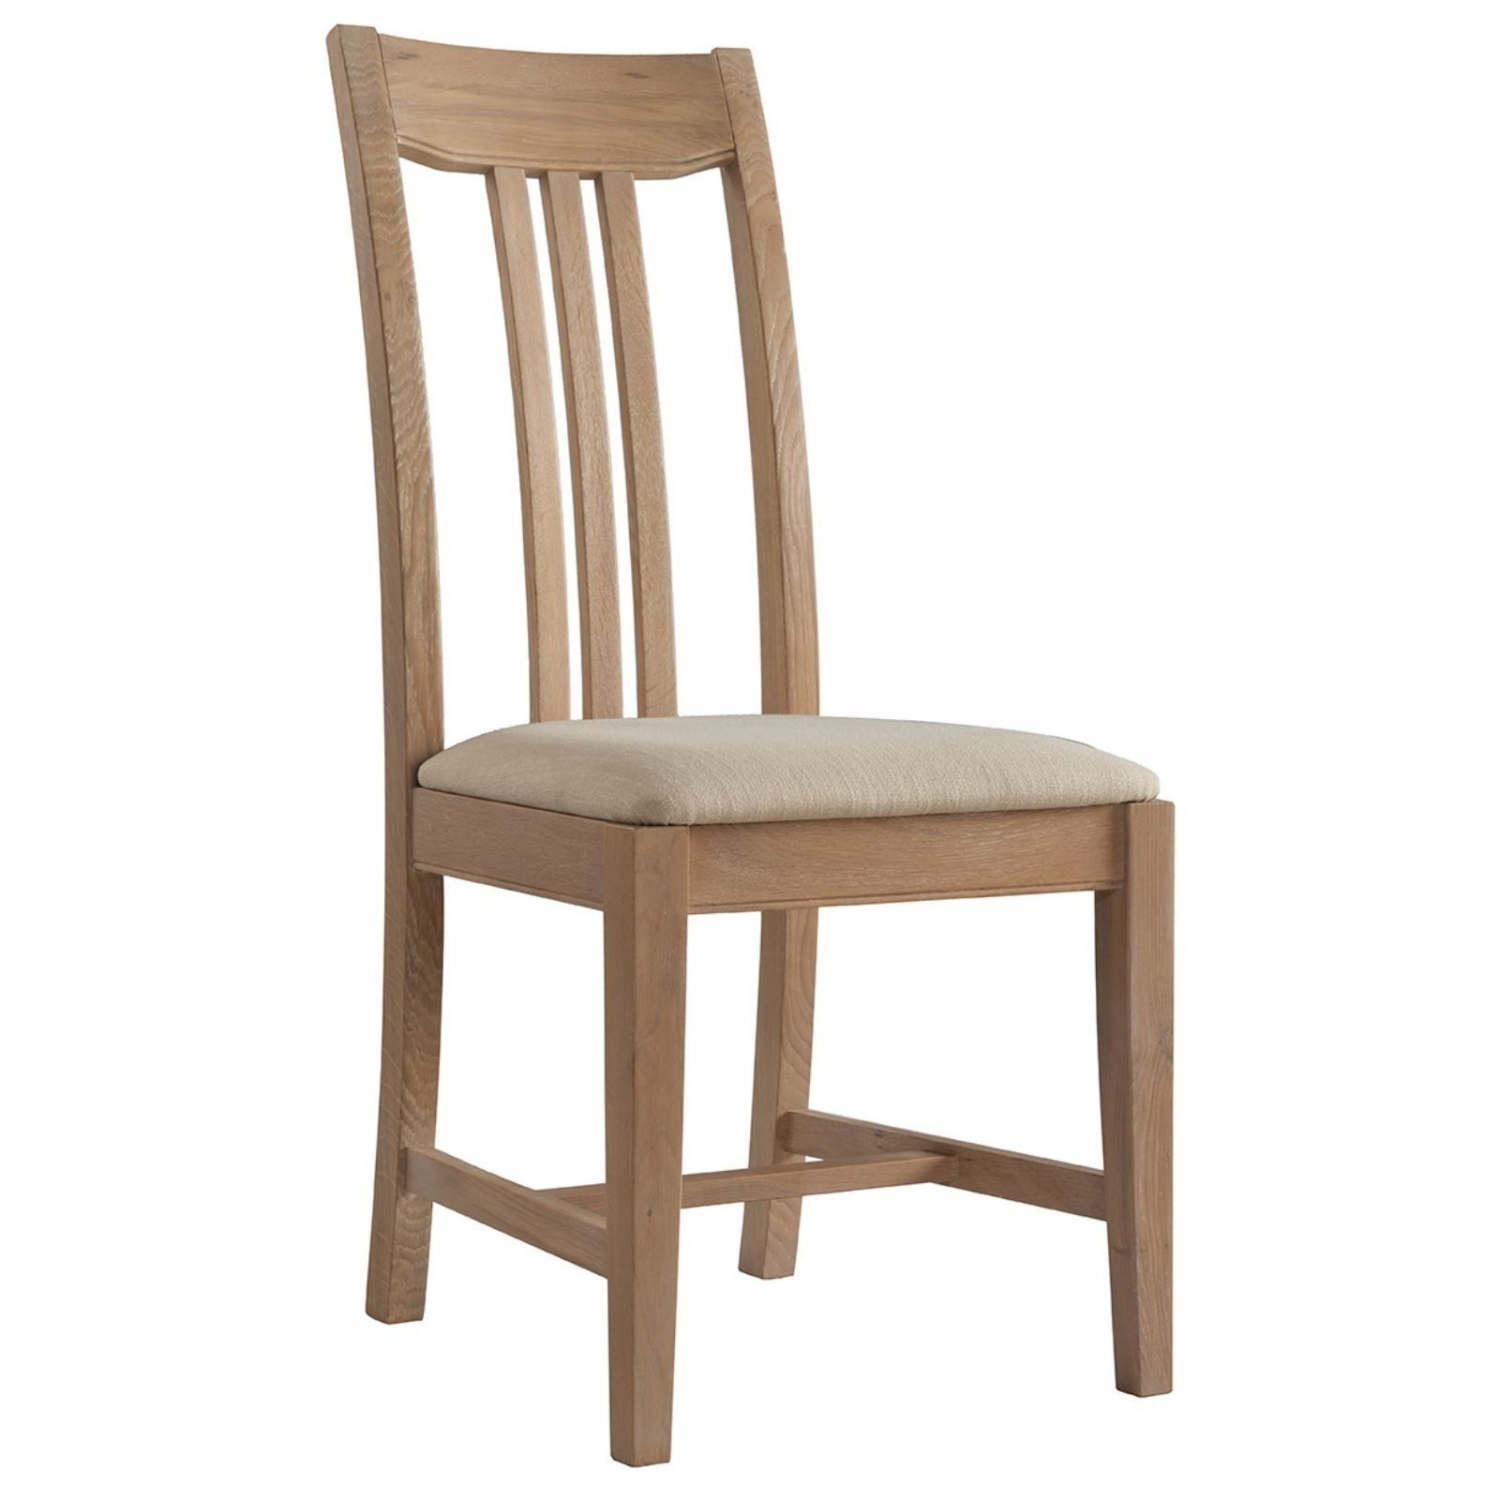 Moreton Solid Oak Furniture Set Of Four Dining Chairs EBay. Full resolution  image, nominally Width 1500 Height 1500 pixels, image with #4F3829.